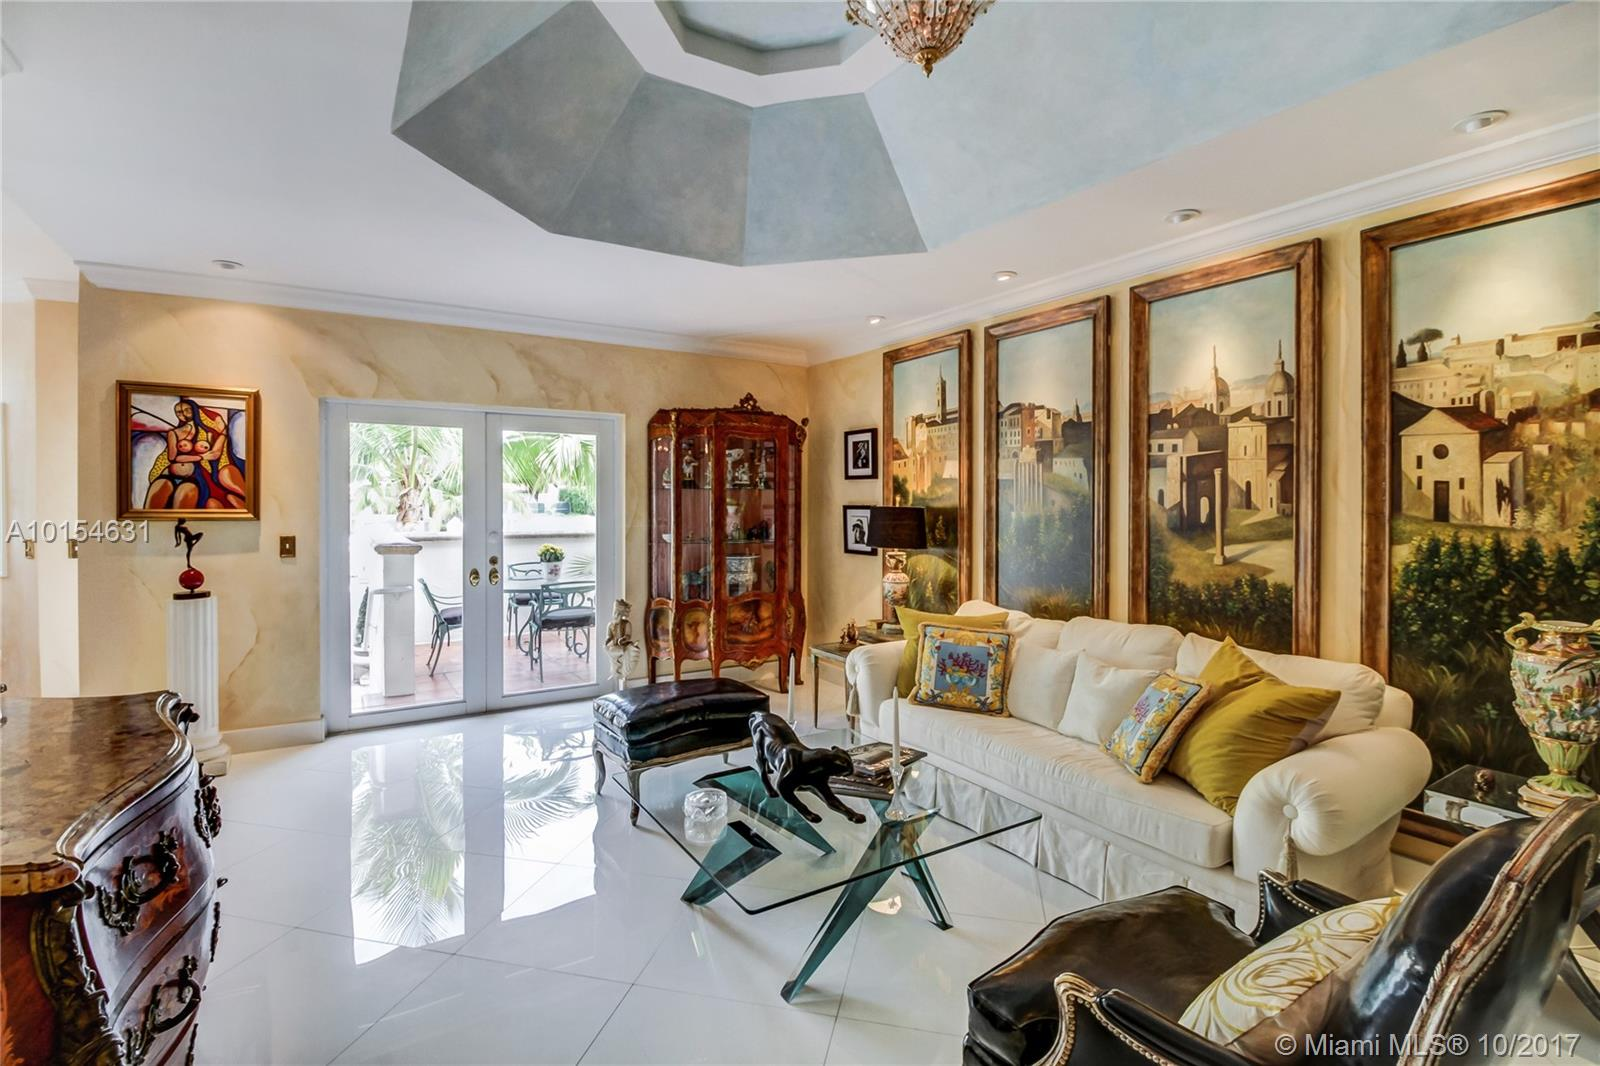 1415 Sunset harbour drive-TH 102 miami-beach--fl-33139-a10154631-Pic06